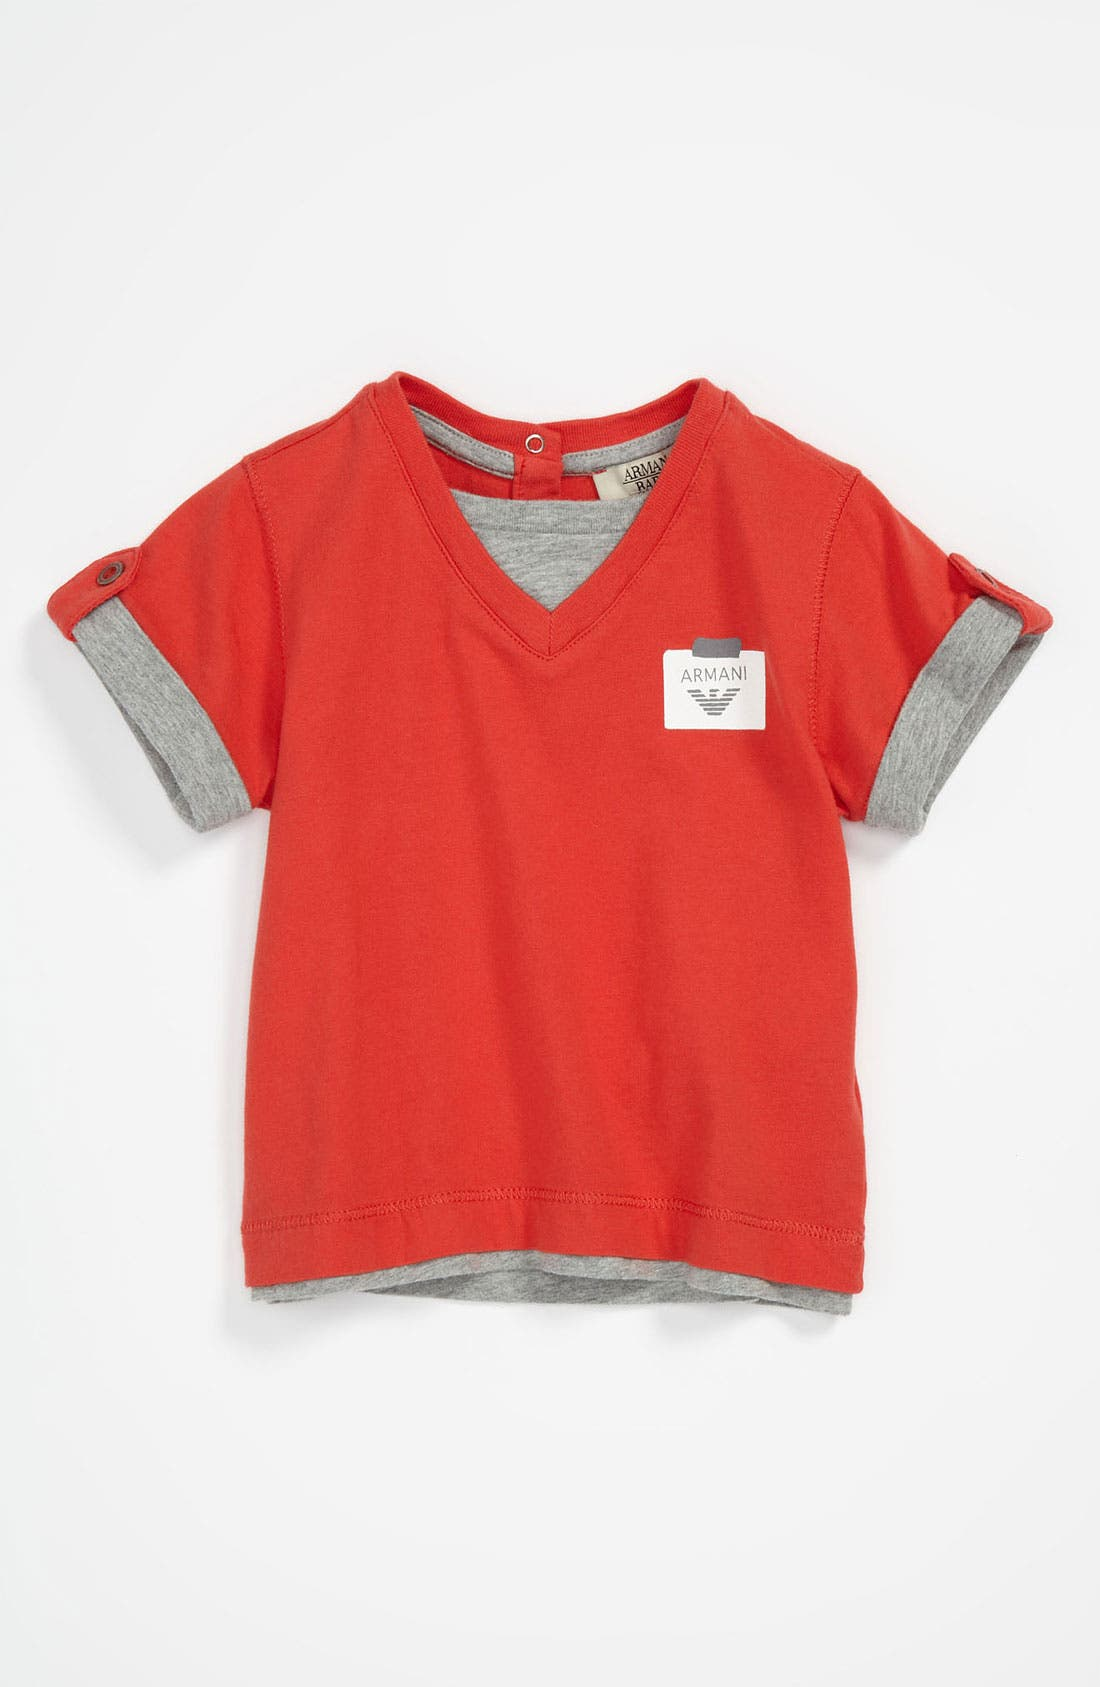 Main Image - Armani Junior T-Shirt (Baby)